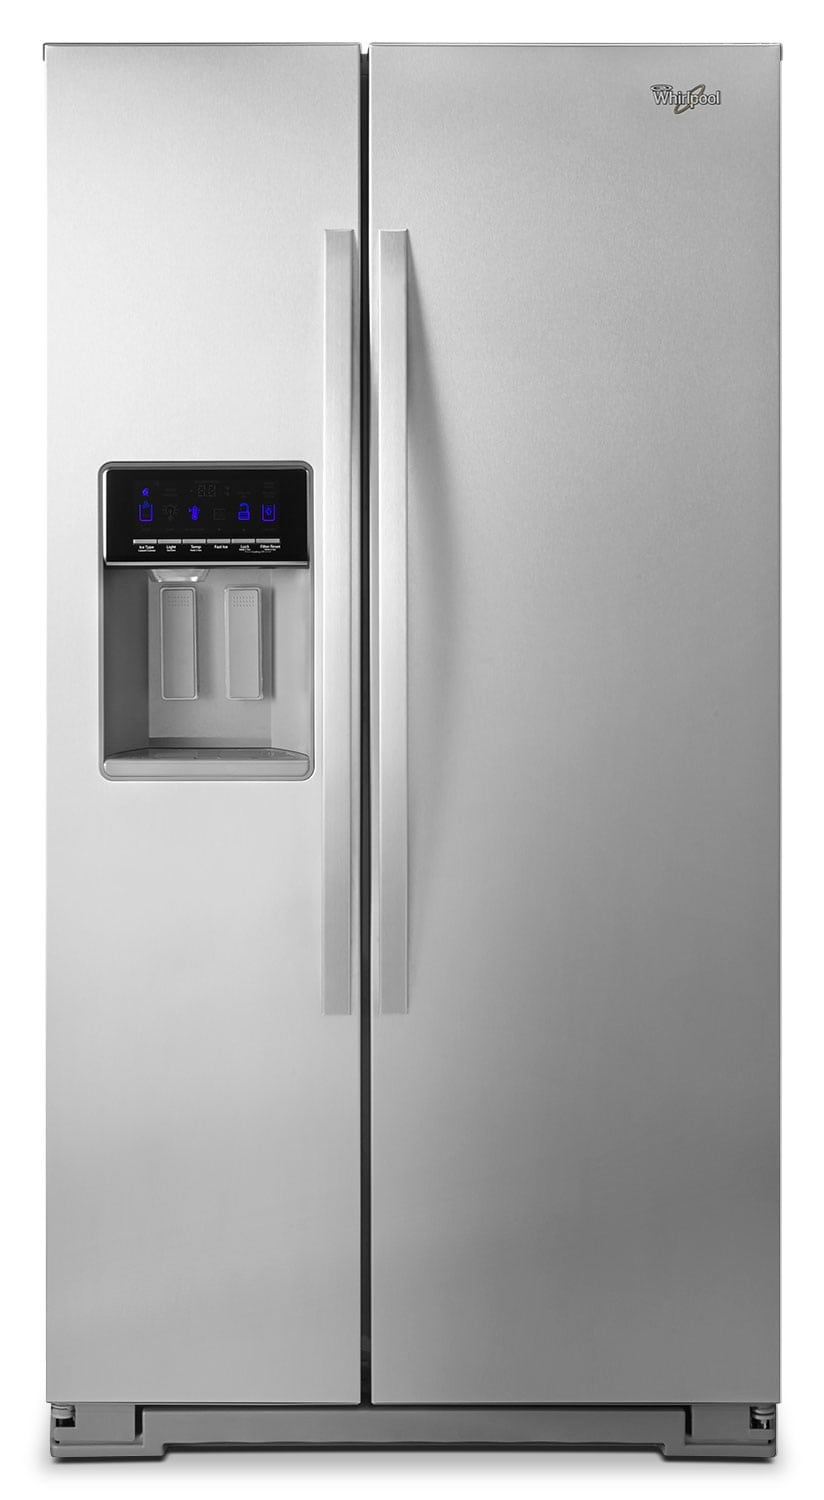 Whirlpool 26 Cu. Ft. Side-by-Side Refrigerator – Stainless Steel